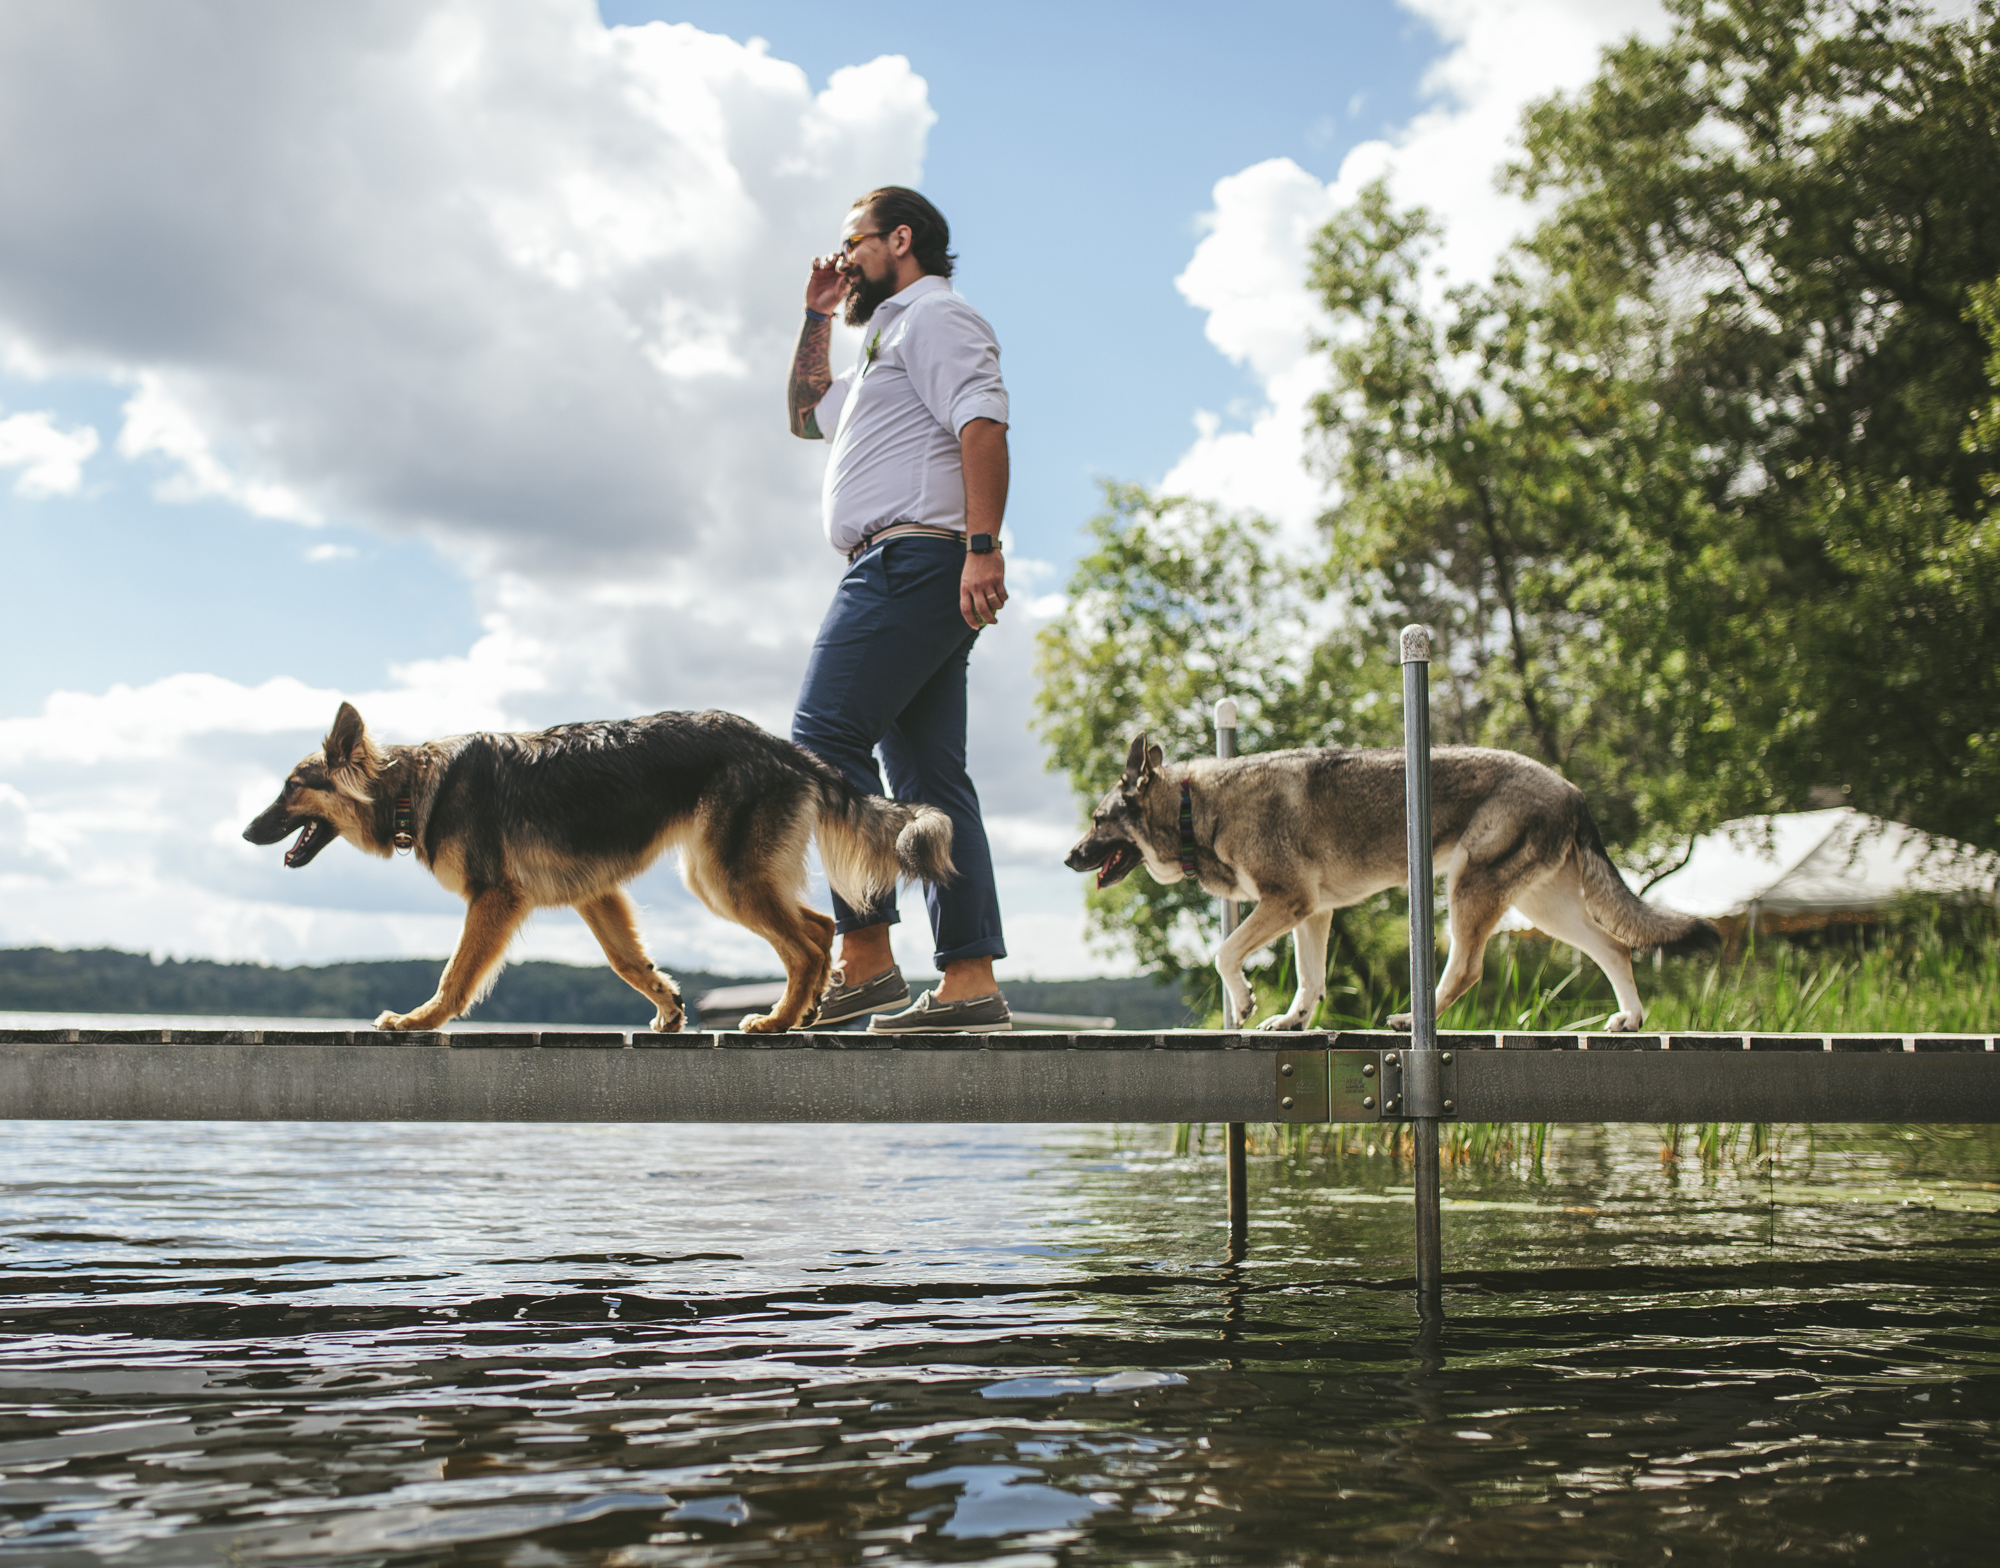 Brandon werth northern minnesota wedding photographer lake ceremony outdoors dogs walking down aisle